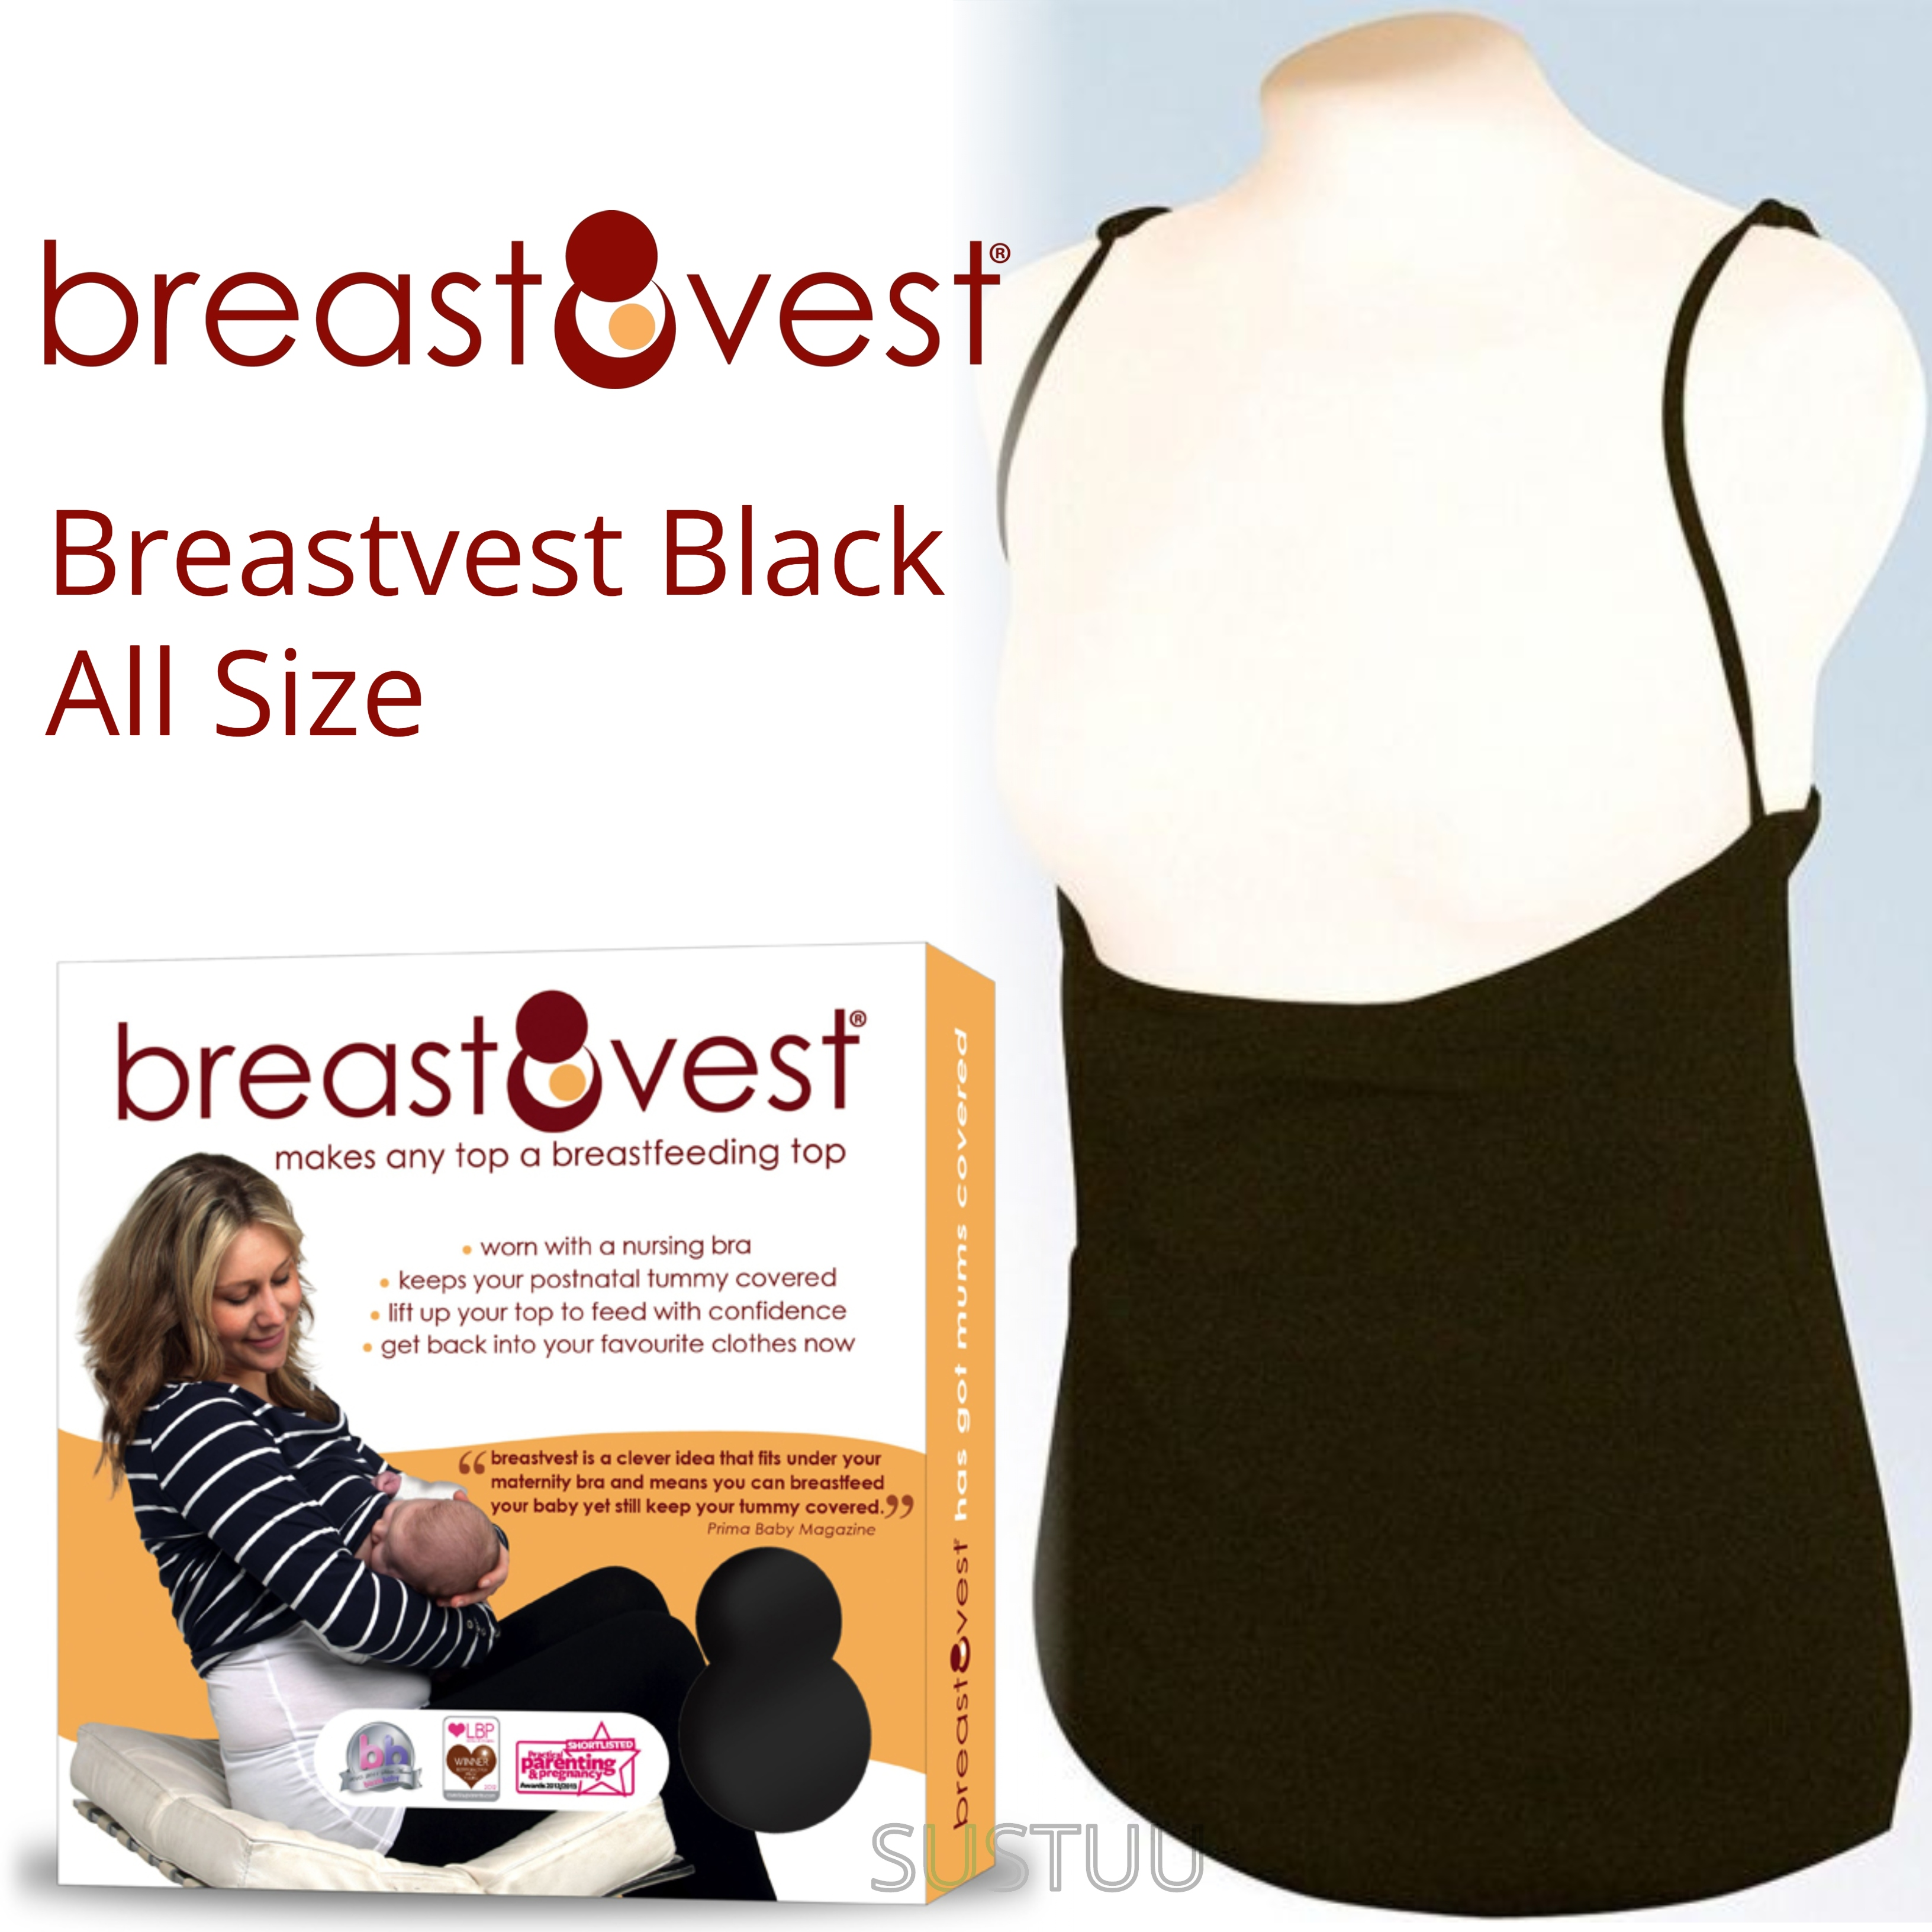 Breastvest Nursing Top Black|Maternity Clothing for Mum|Pregnancy Use|Large